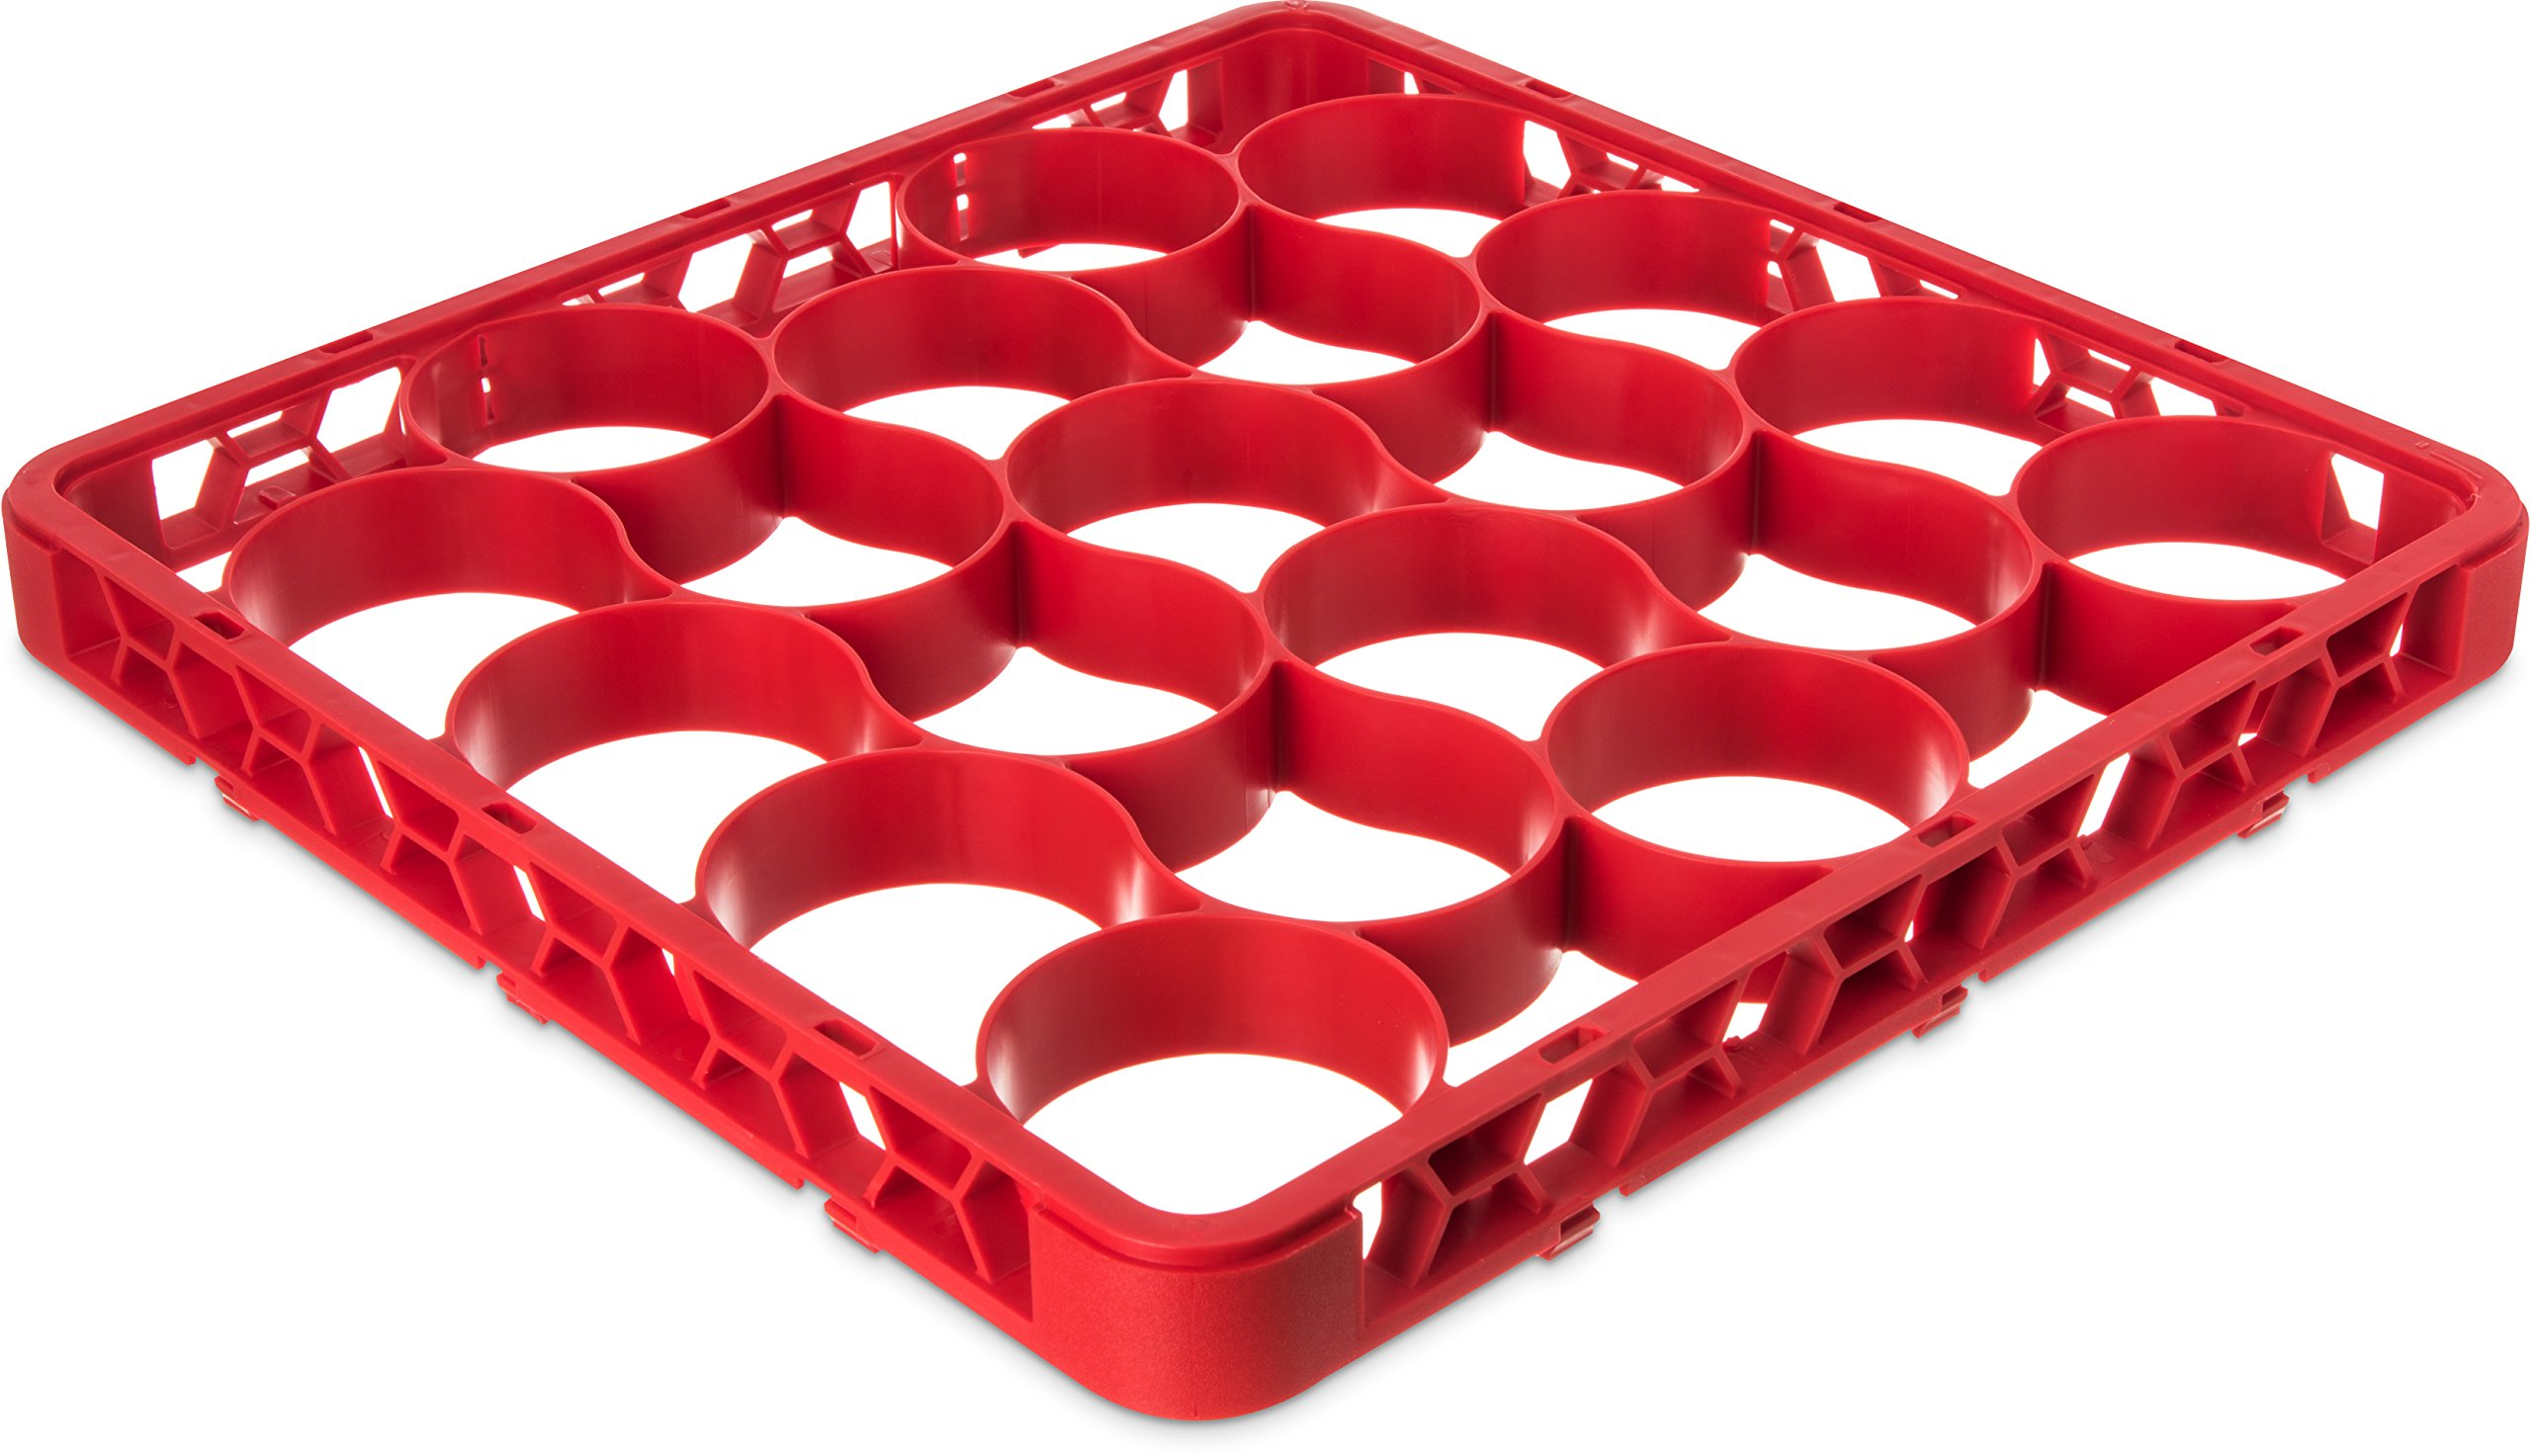 Carlisle REW20SC05 OptiClean NeWave 20 Compartment Glass Rack Extender, Red (Pack of 6)